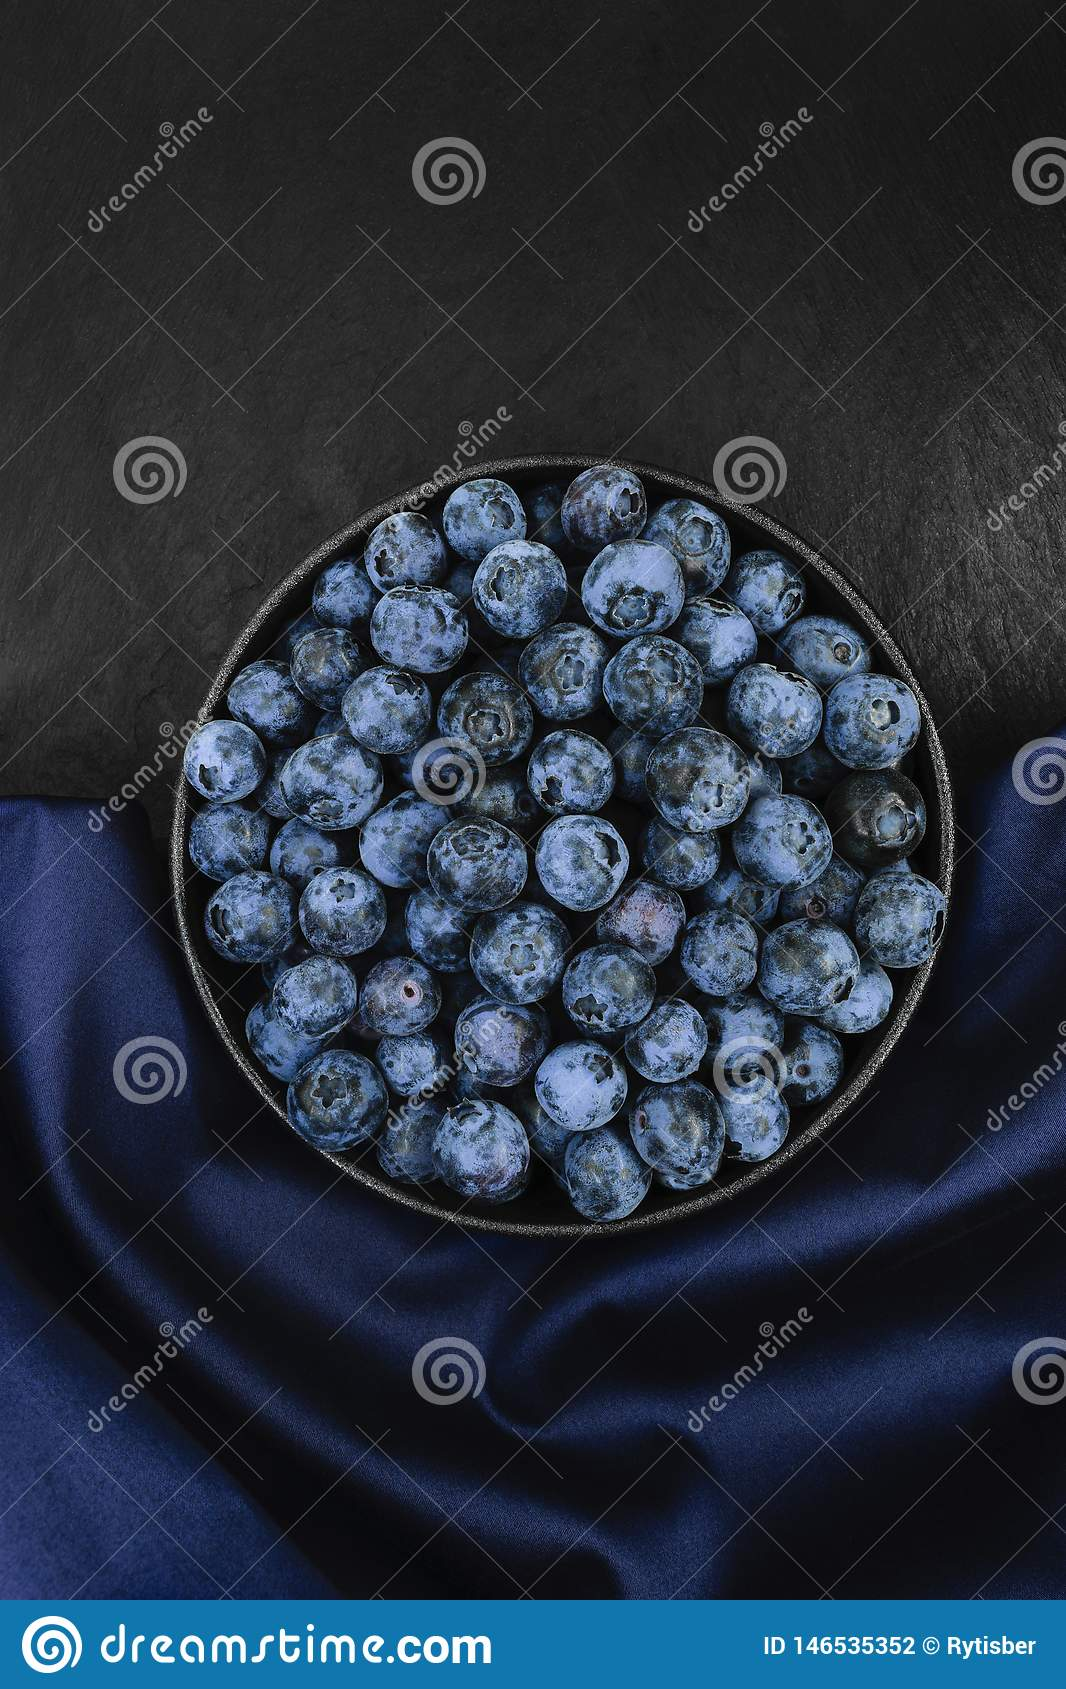 Blueberries on blue fabric and black stone background